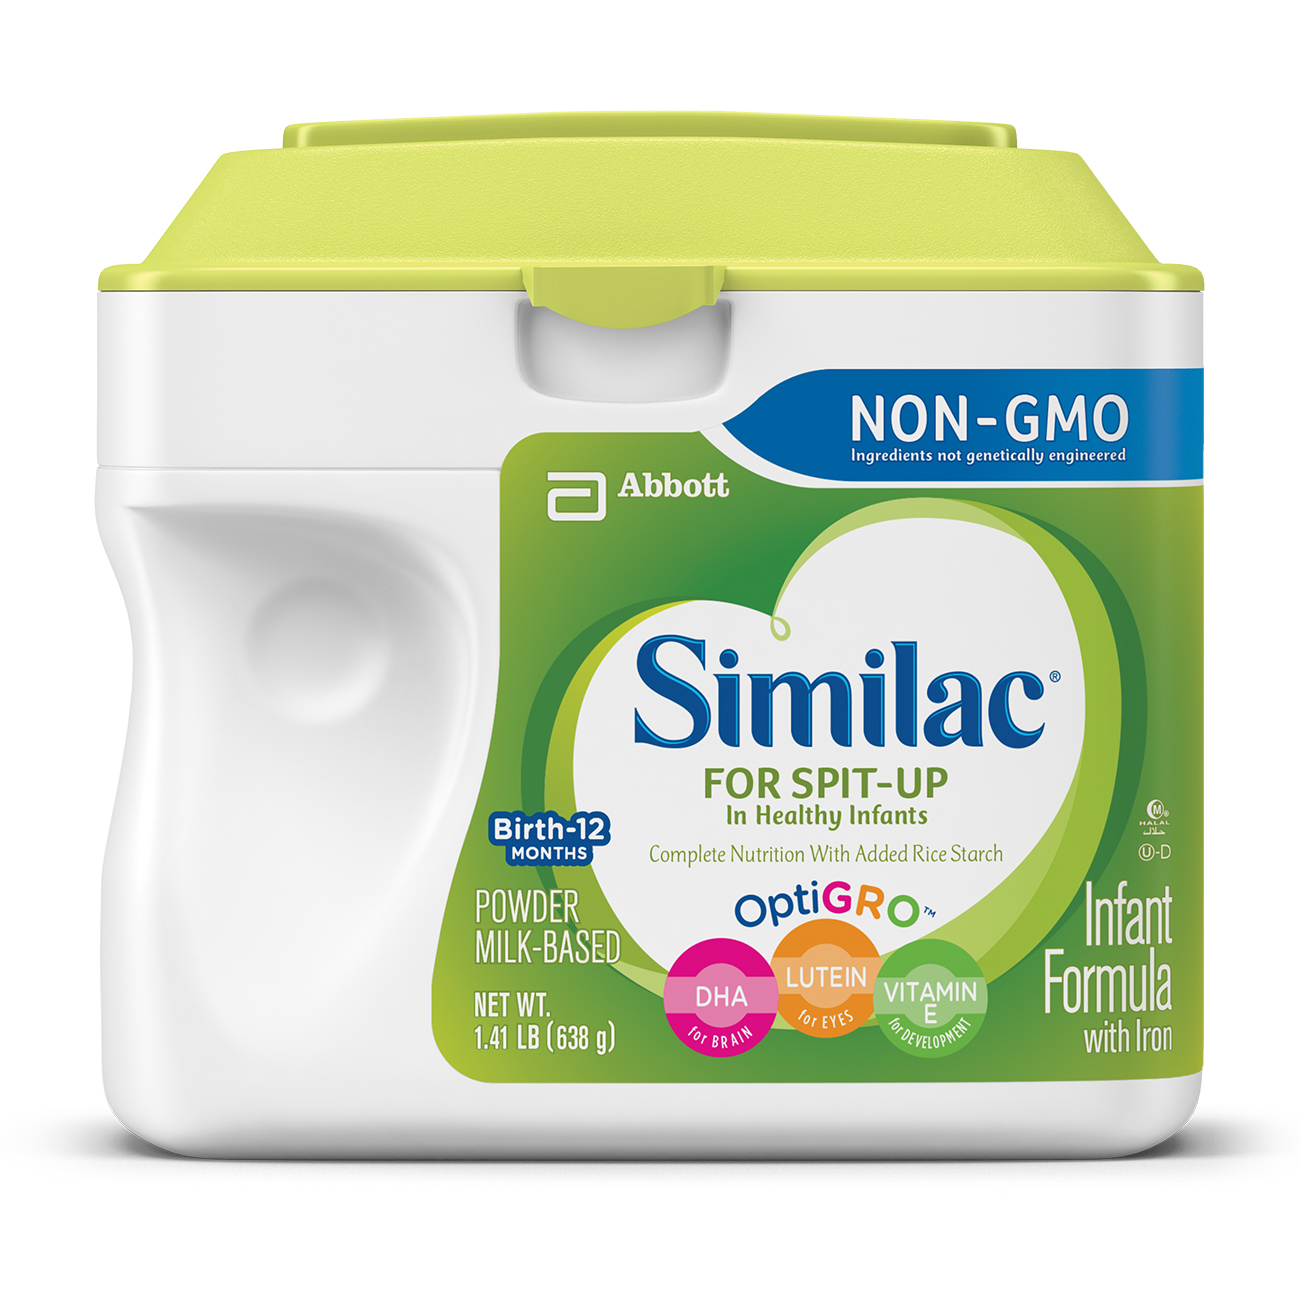 Similac For Spit-Up NON-GMO Infant Formula with Iron, Powder, 1.41 lb (Pack of 6) by Similac